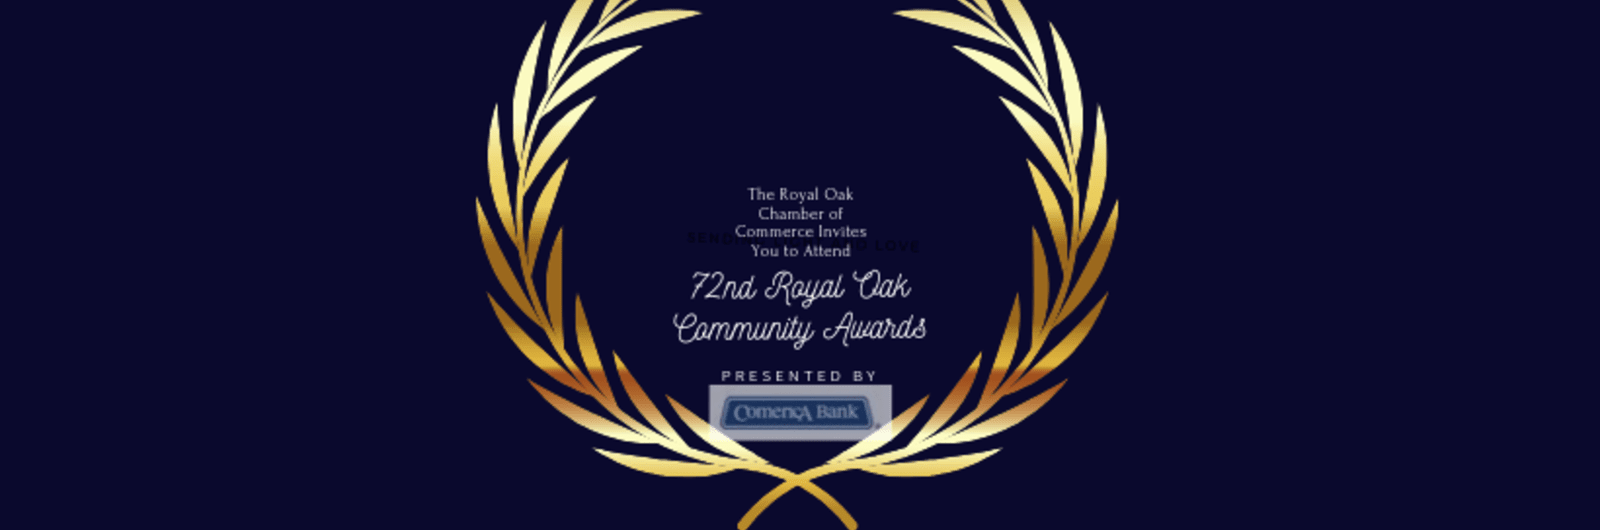 community-awards-w1600h530.png